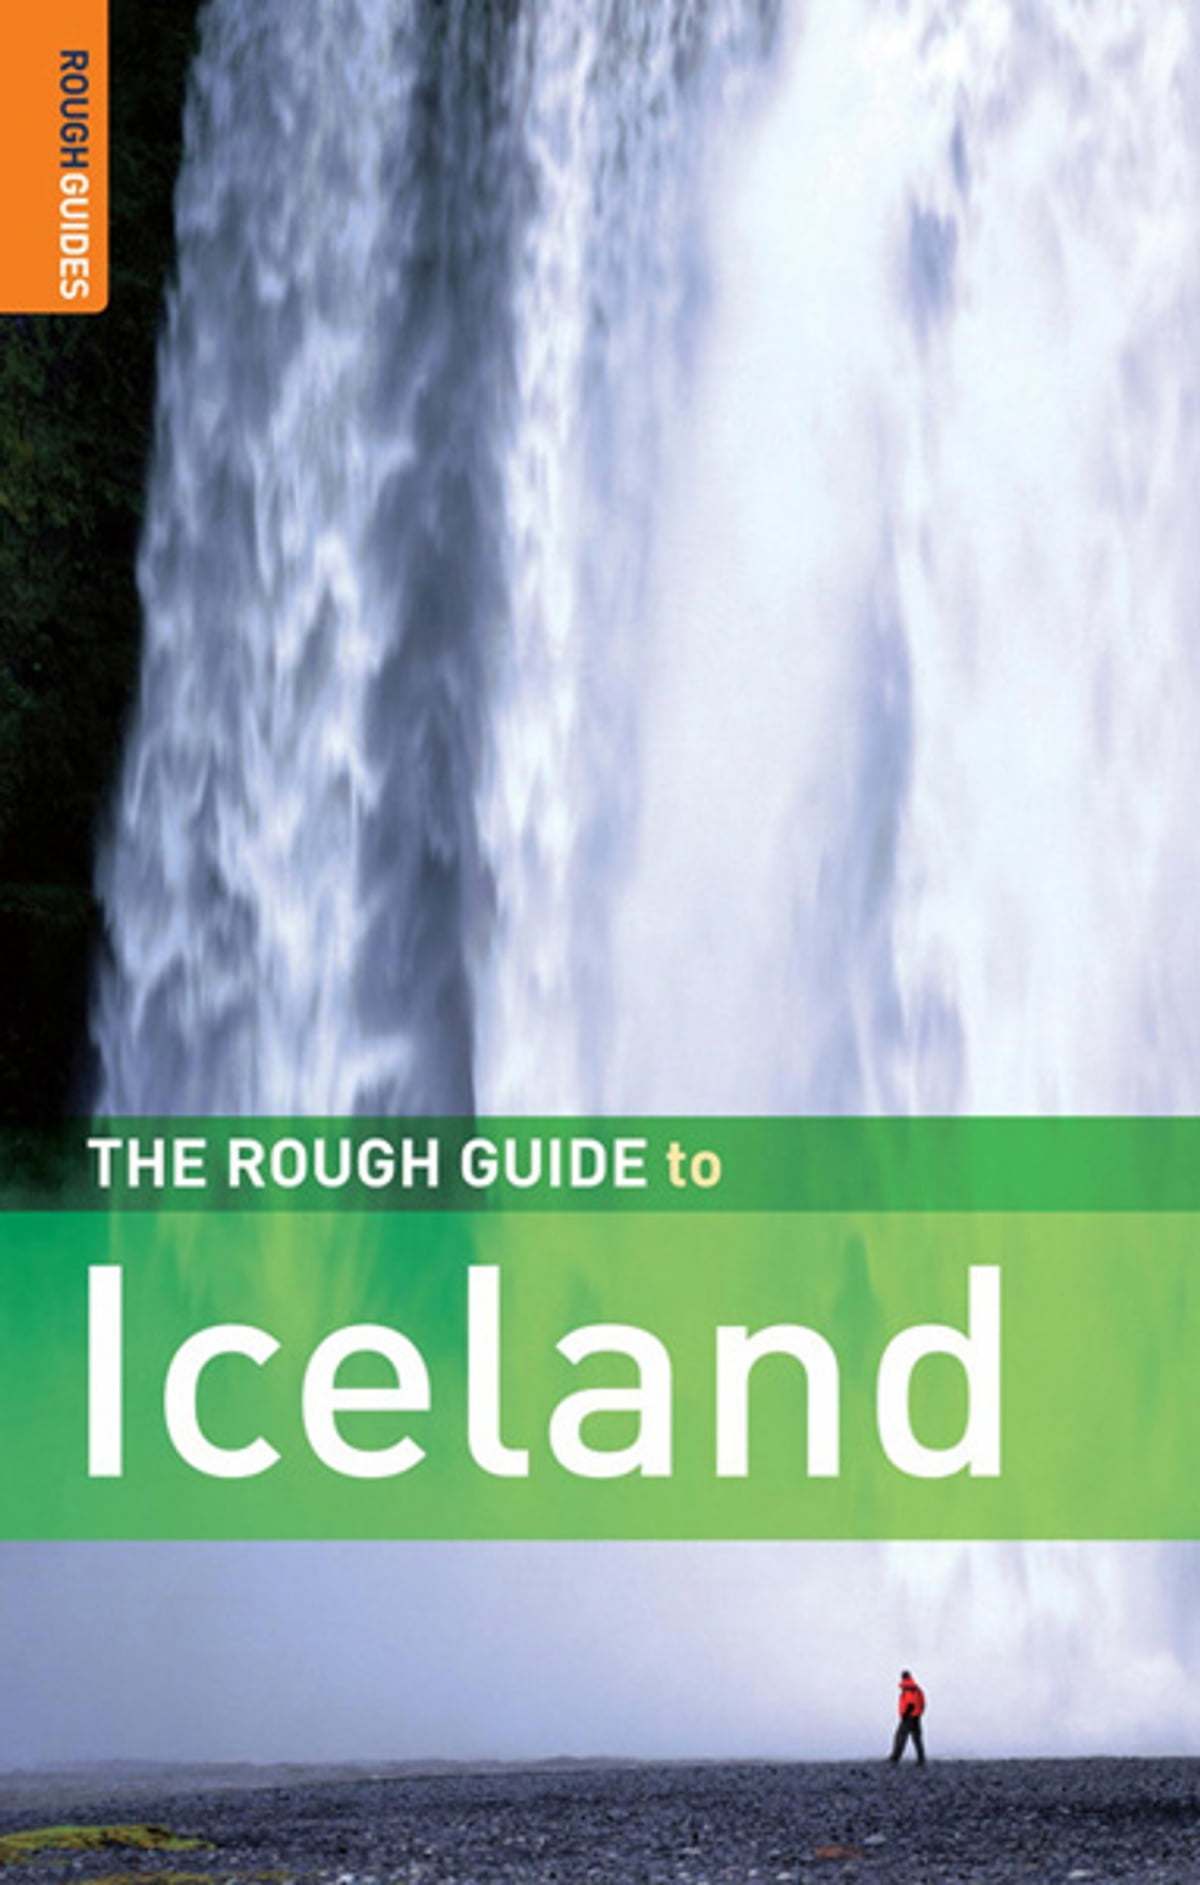 The Rough Guide to Iceland eBook by David Leffman - 9781405380720 | Rakuten  Kobo